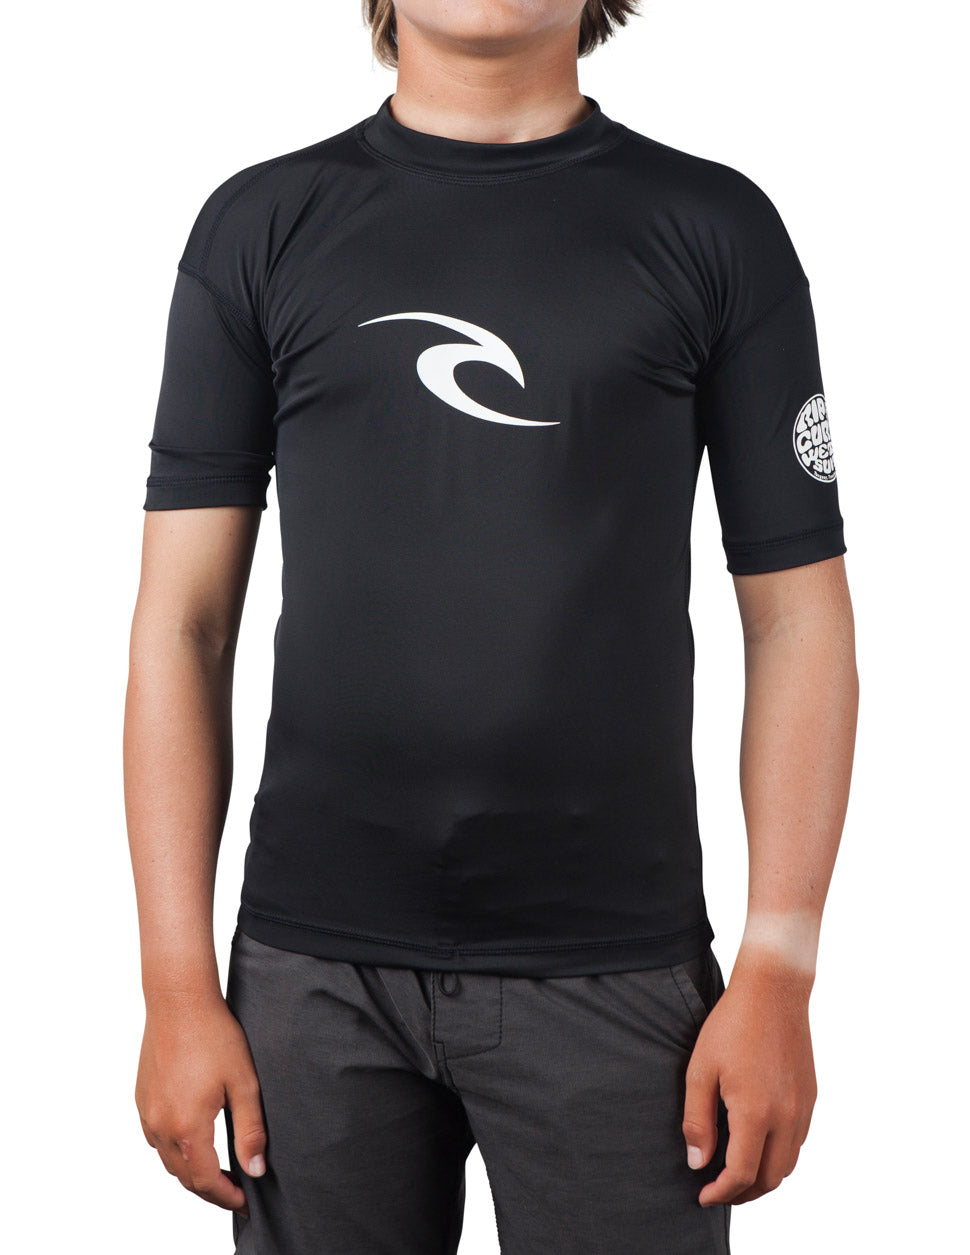 Rip Curl Boy's Corpo S/S Rash Guard